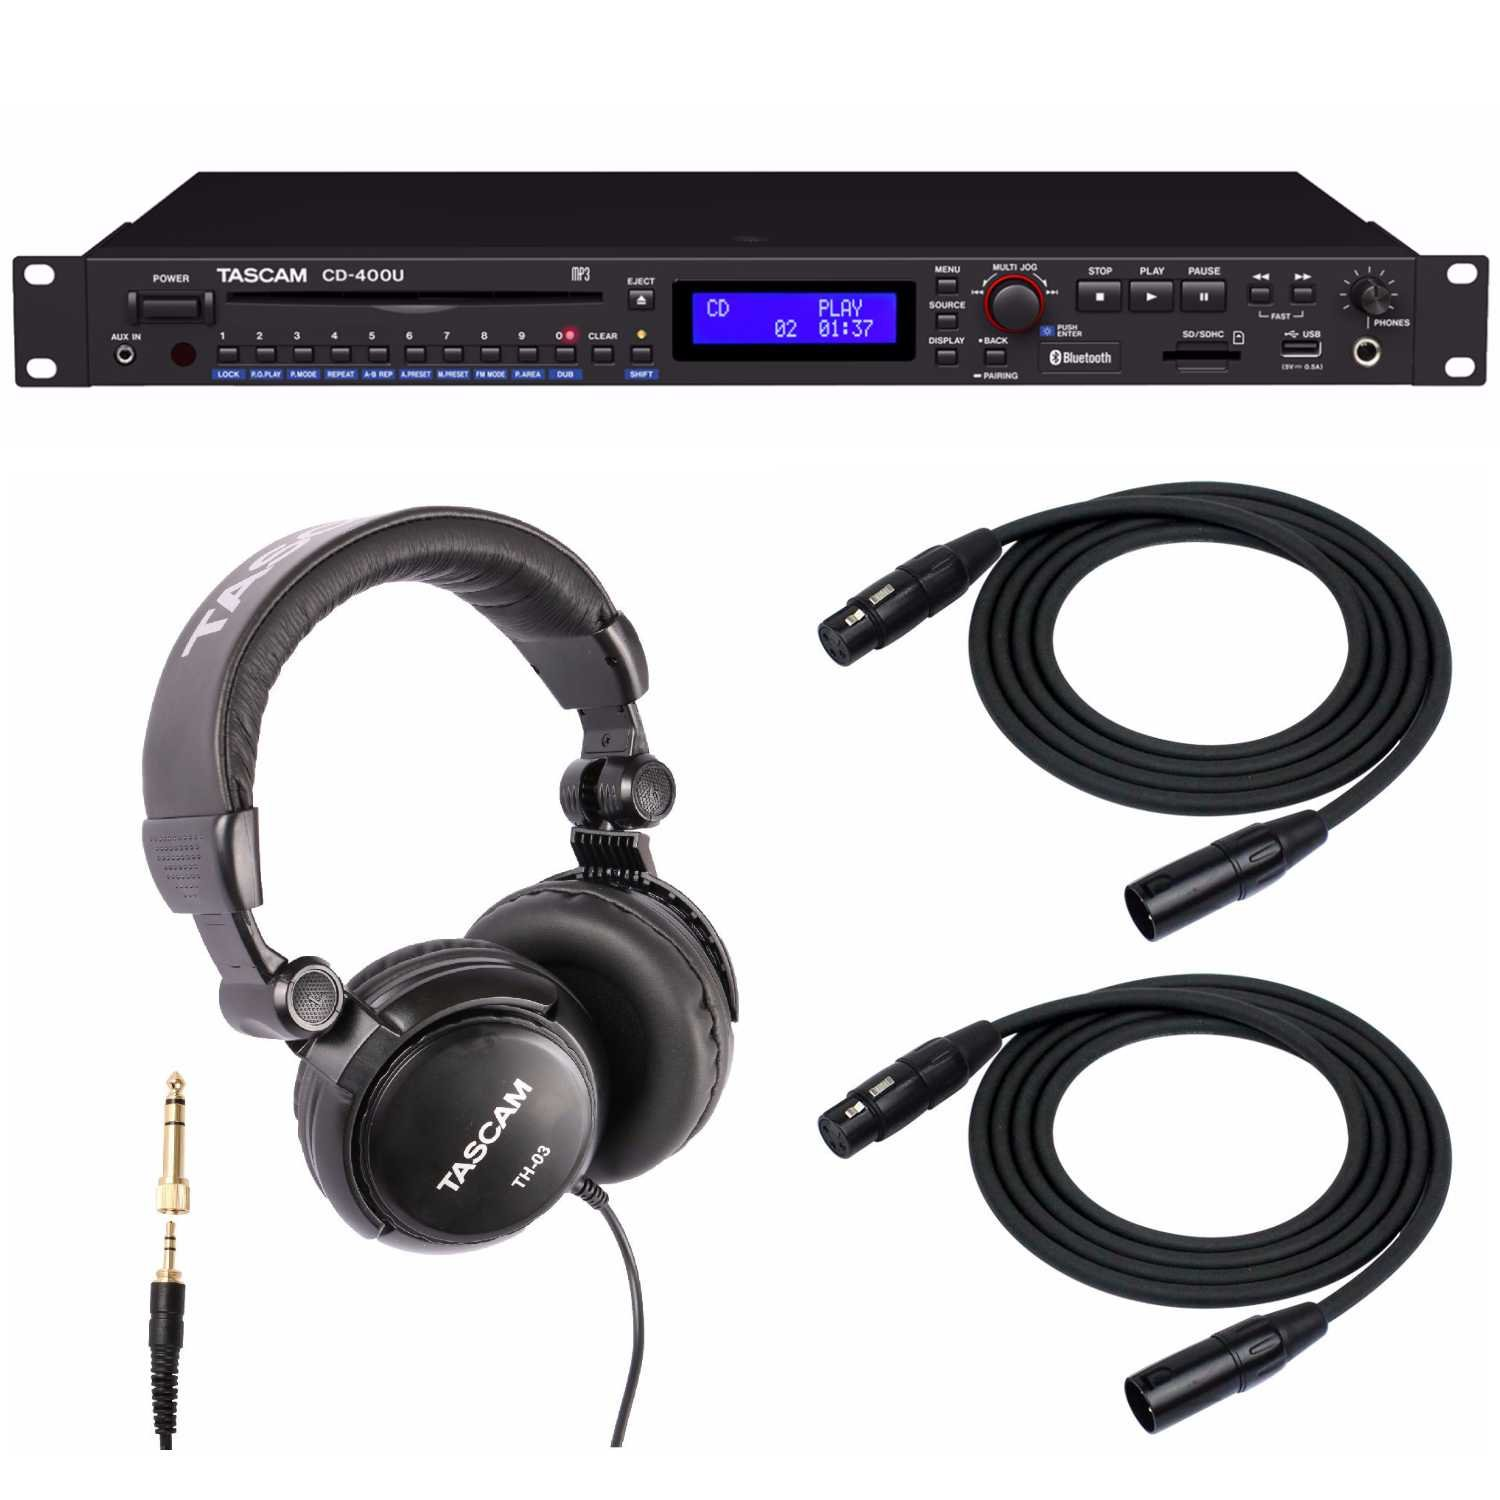 Tascam CD-400U CD/Media Player with Headphones and 2 XLR Cables